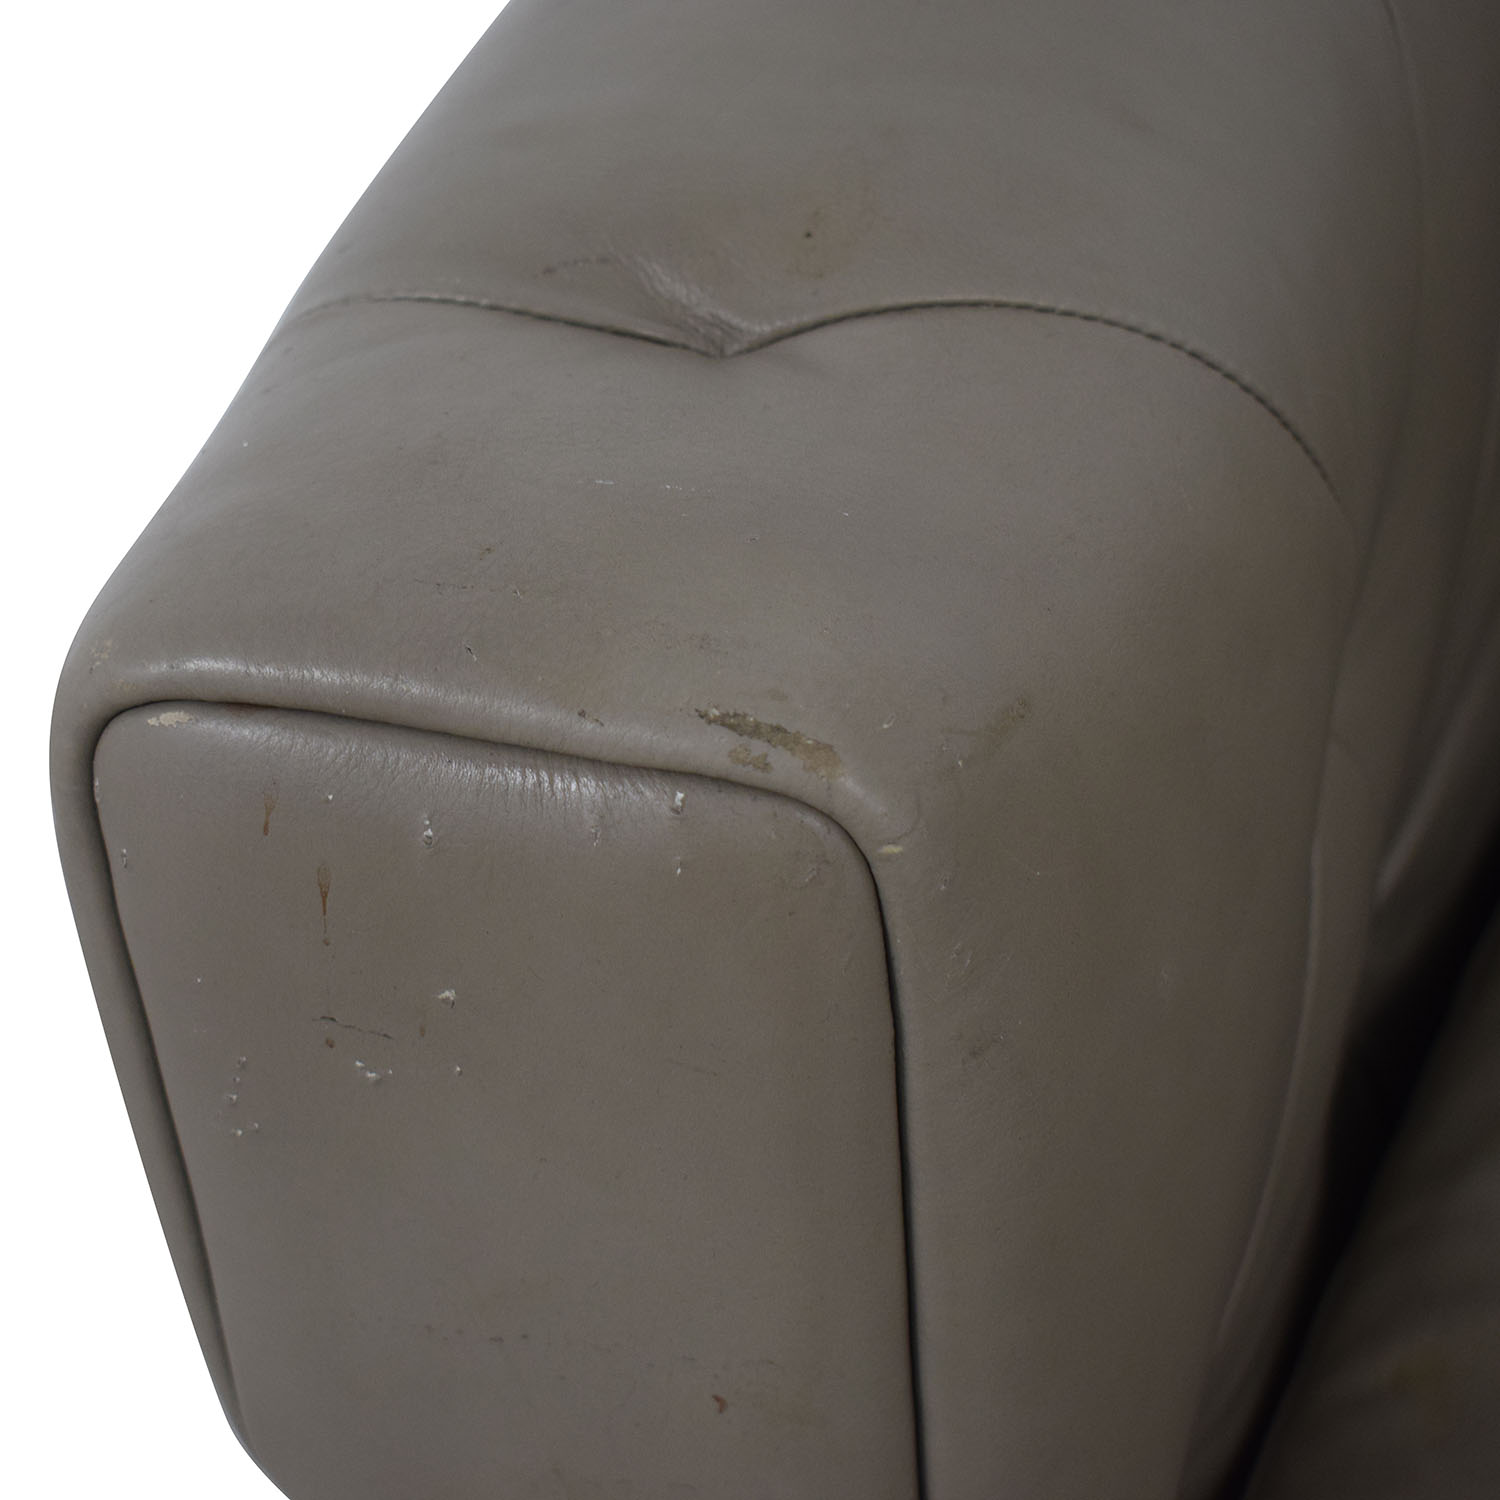 West Elm West Elm Leather Chair gray